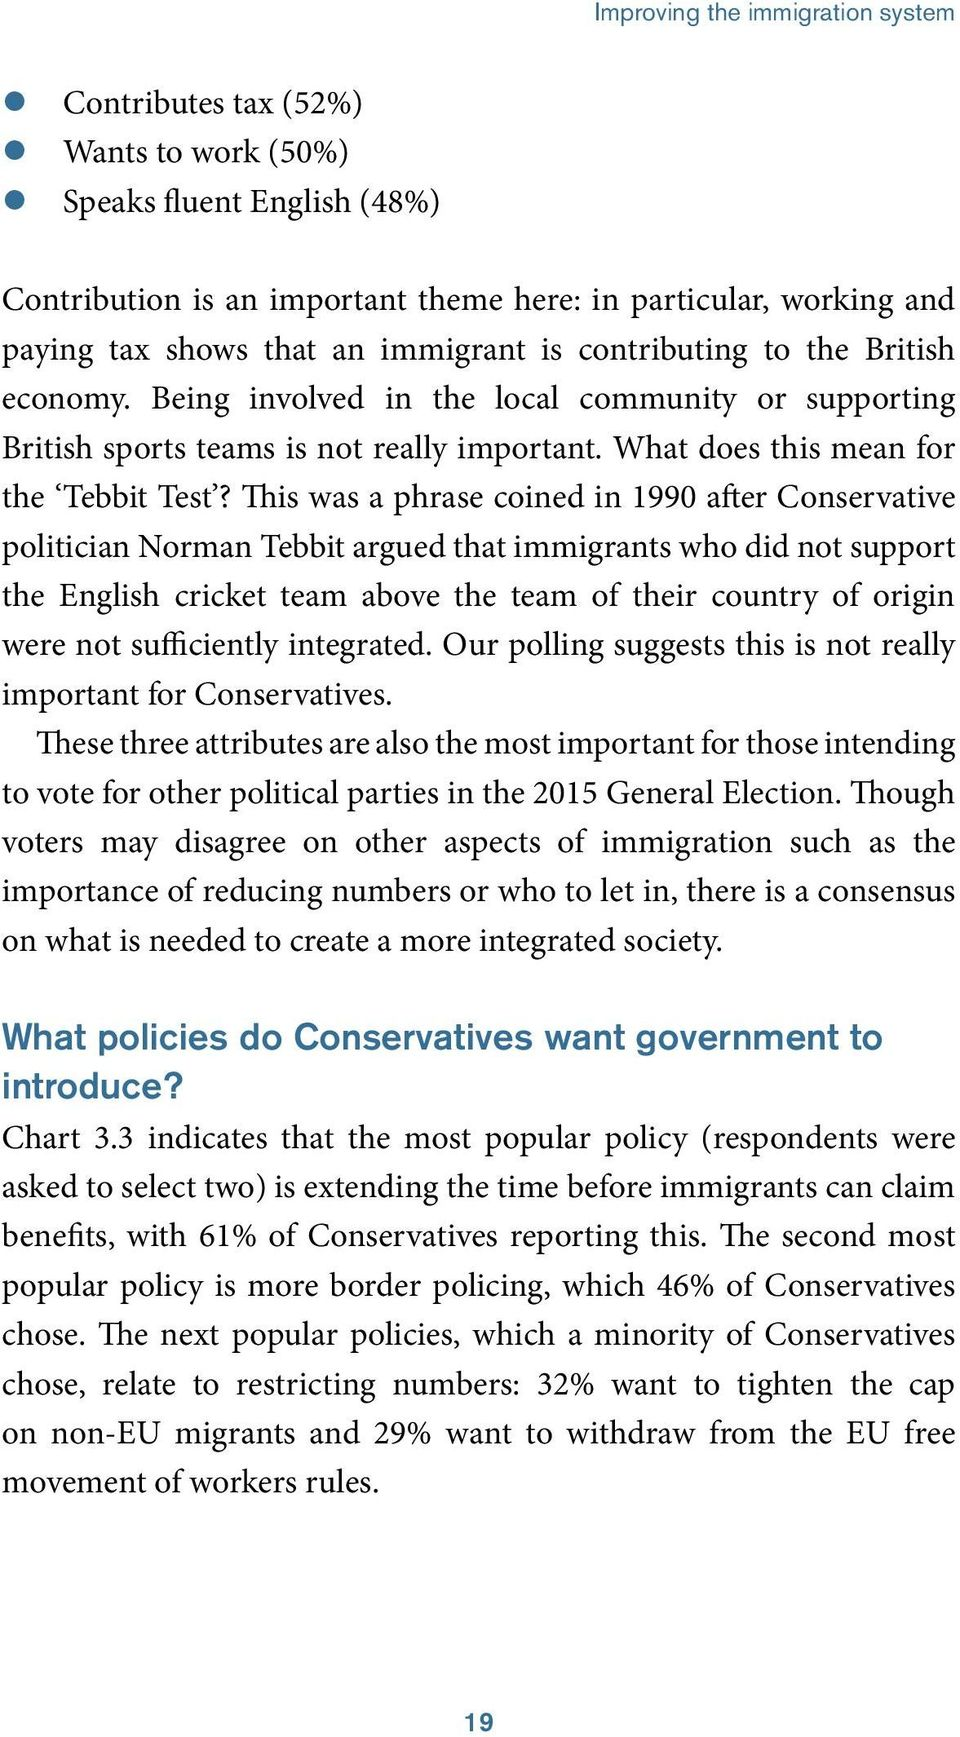 This was a phrase coined in 1990 after Conservative politician Norman Tebbit argued that immigrants who did not support the English cricket team above the team of their country of origin were not